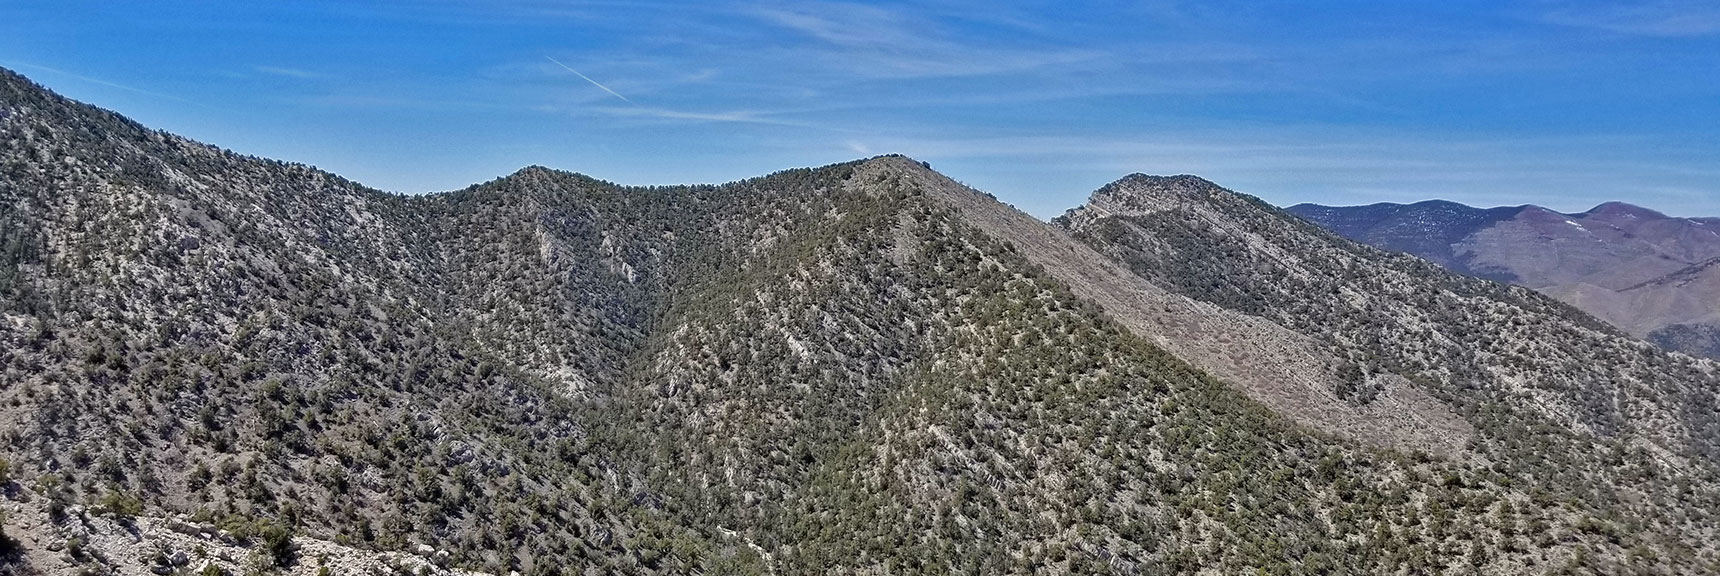 Keystone Thrust Looking West Viewed from the 7400ft High Point on the La Madre Mountain Nevada Northern Approach